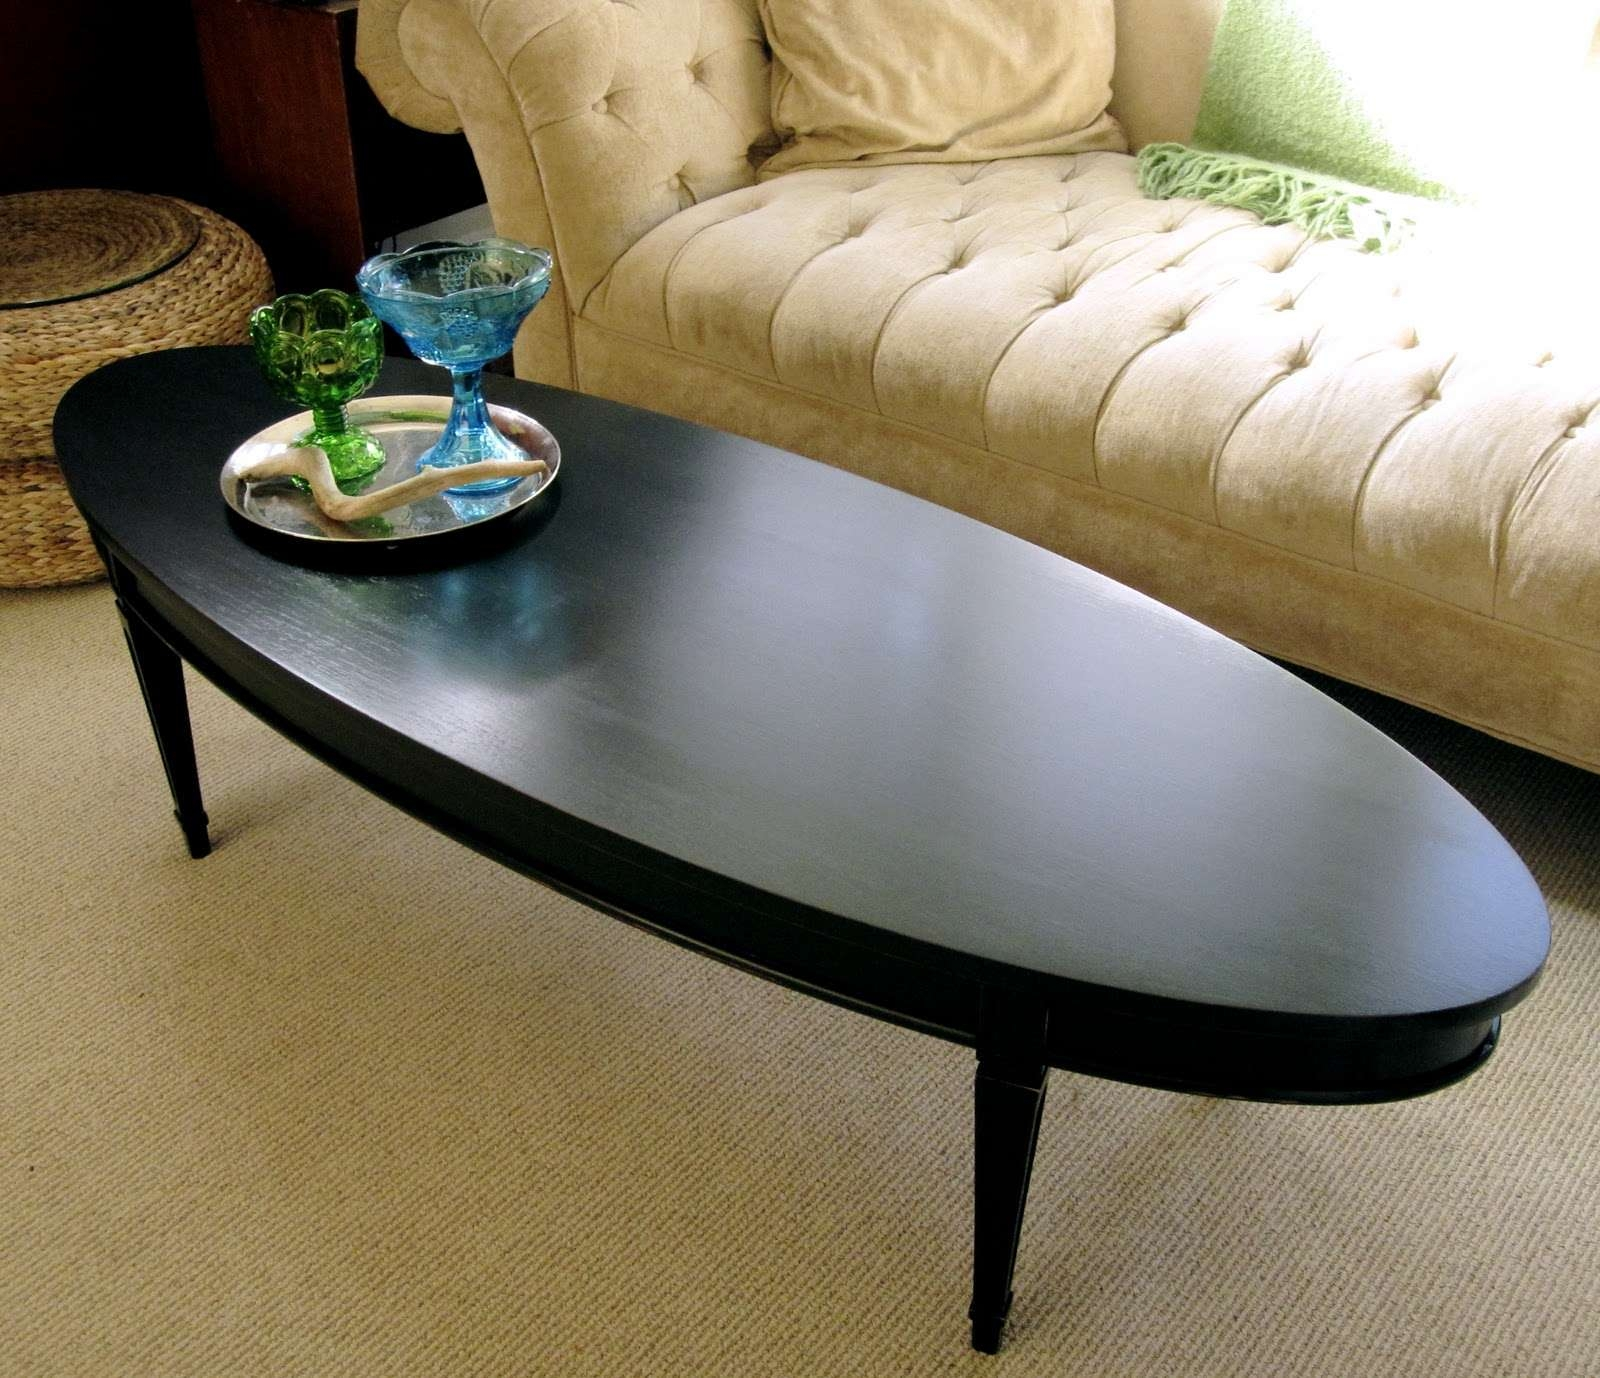 Sweet Tree Furniture: Black Oval Coffee Table Intended For Most Recently Released Black Oval Coffee Tables (View 15 of 20)